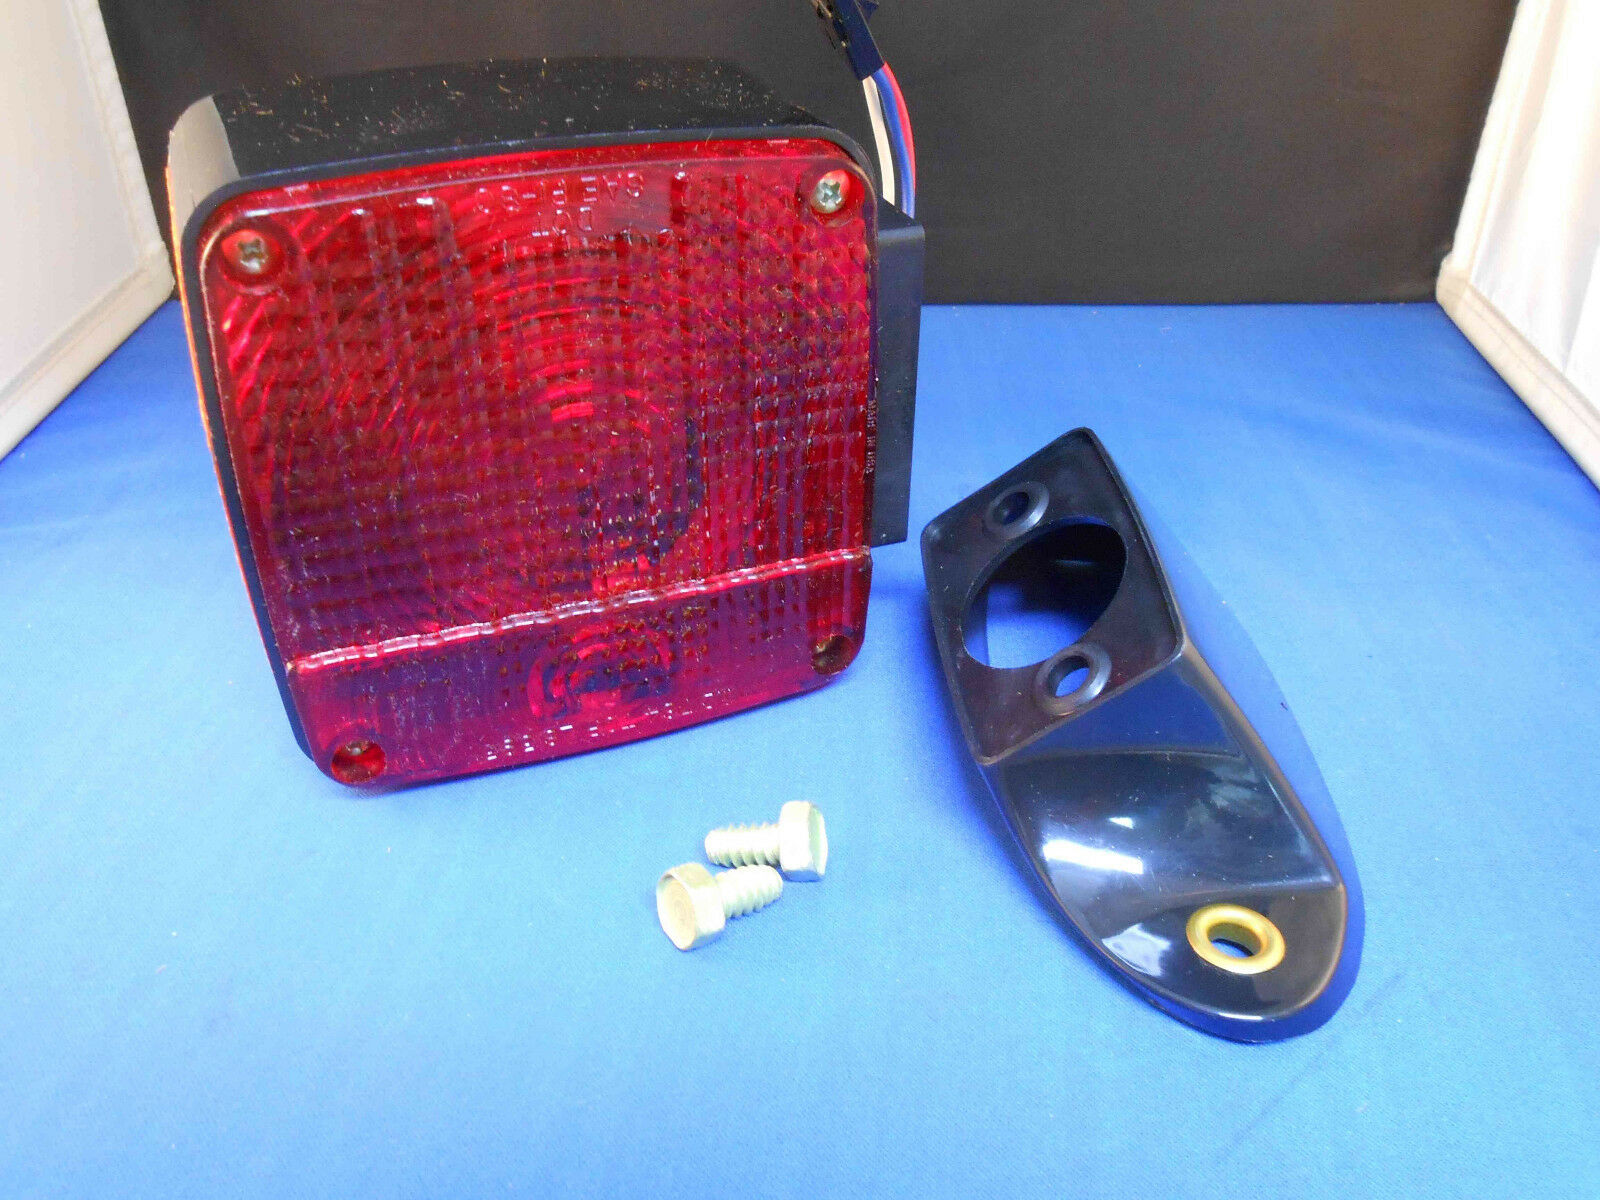 764 2851 Kd Lamp Co Red And Amber Directional Light New Old Stock 5pcs 24v 8mm Led Power Indicator Signal Xd8 1 Ebay Of 8only 2 Available